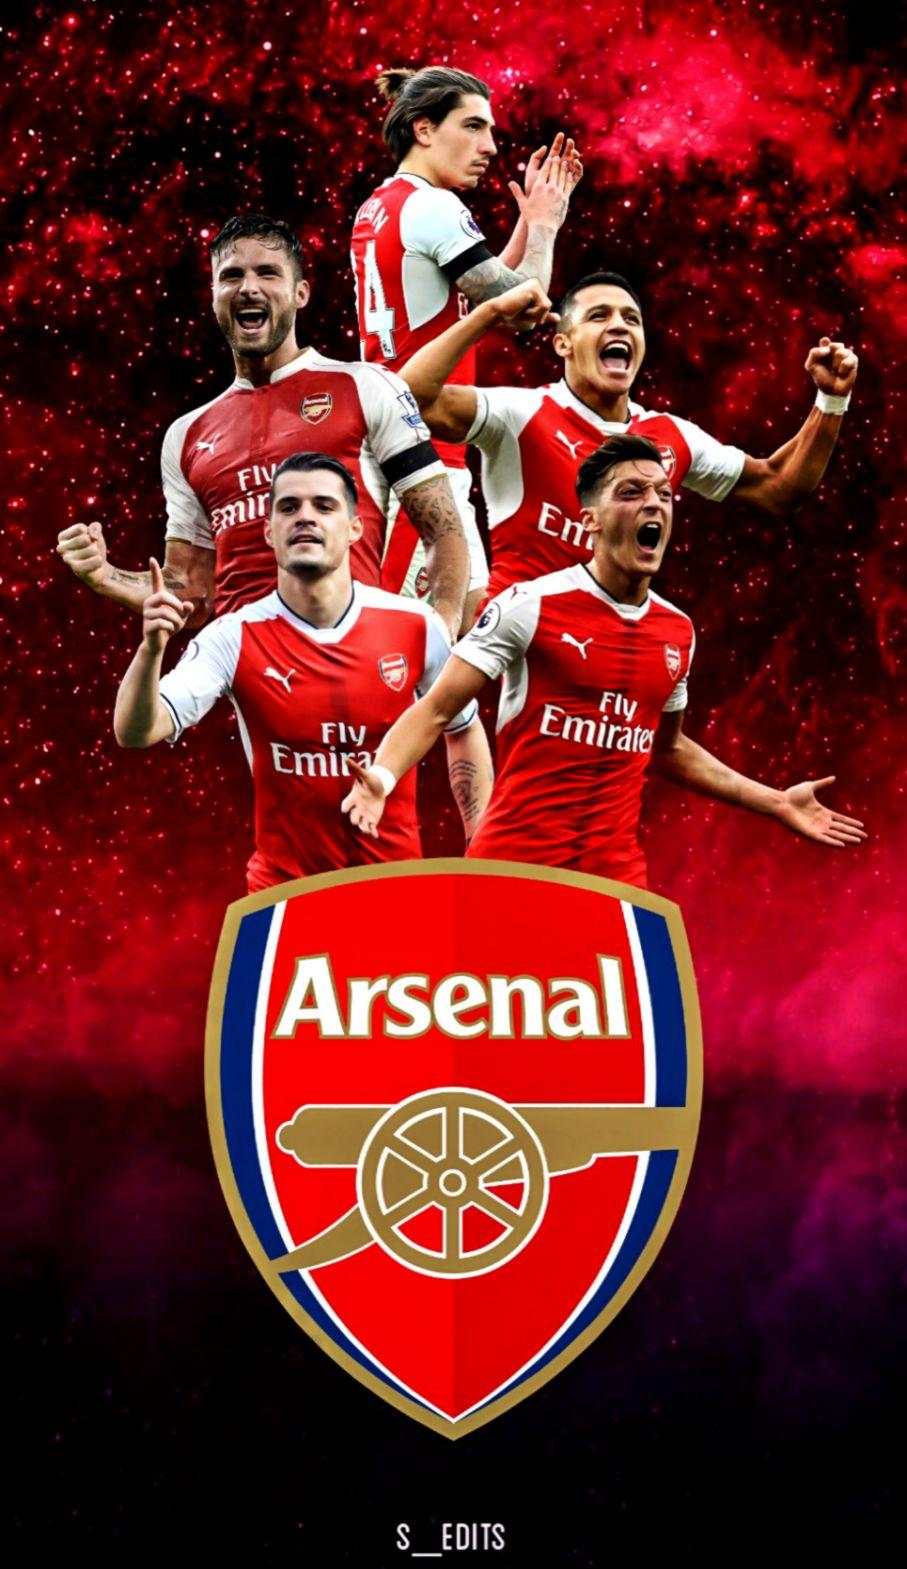 Players Arsenal 2019 Wallpapers - Wallpaper Cave